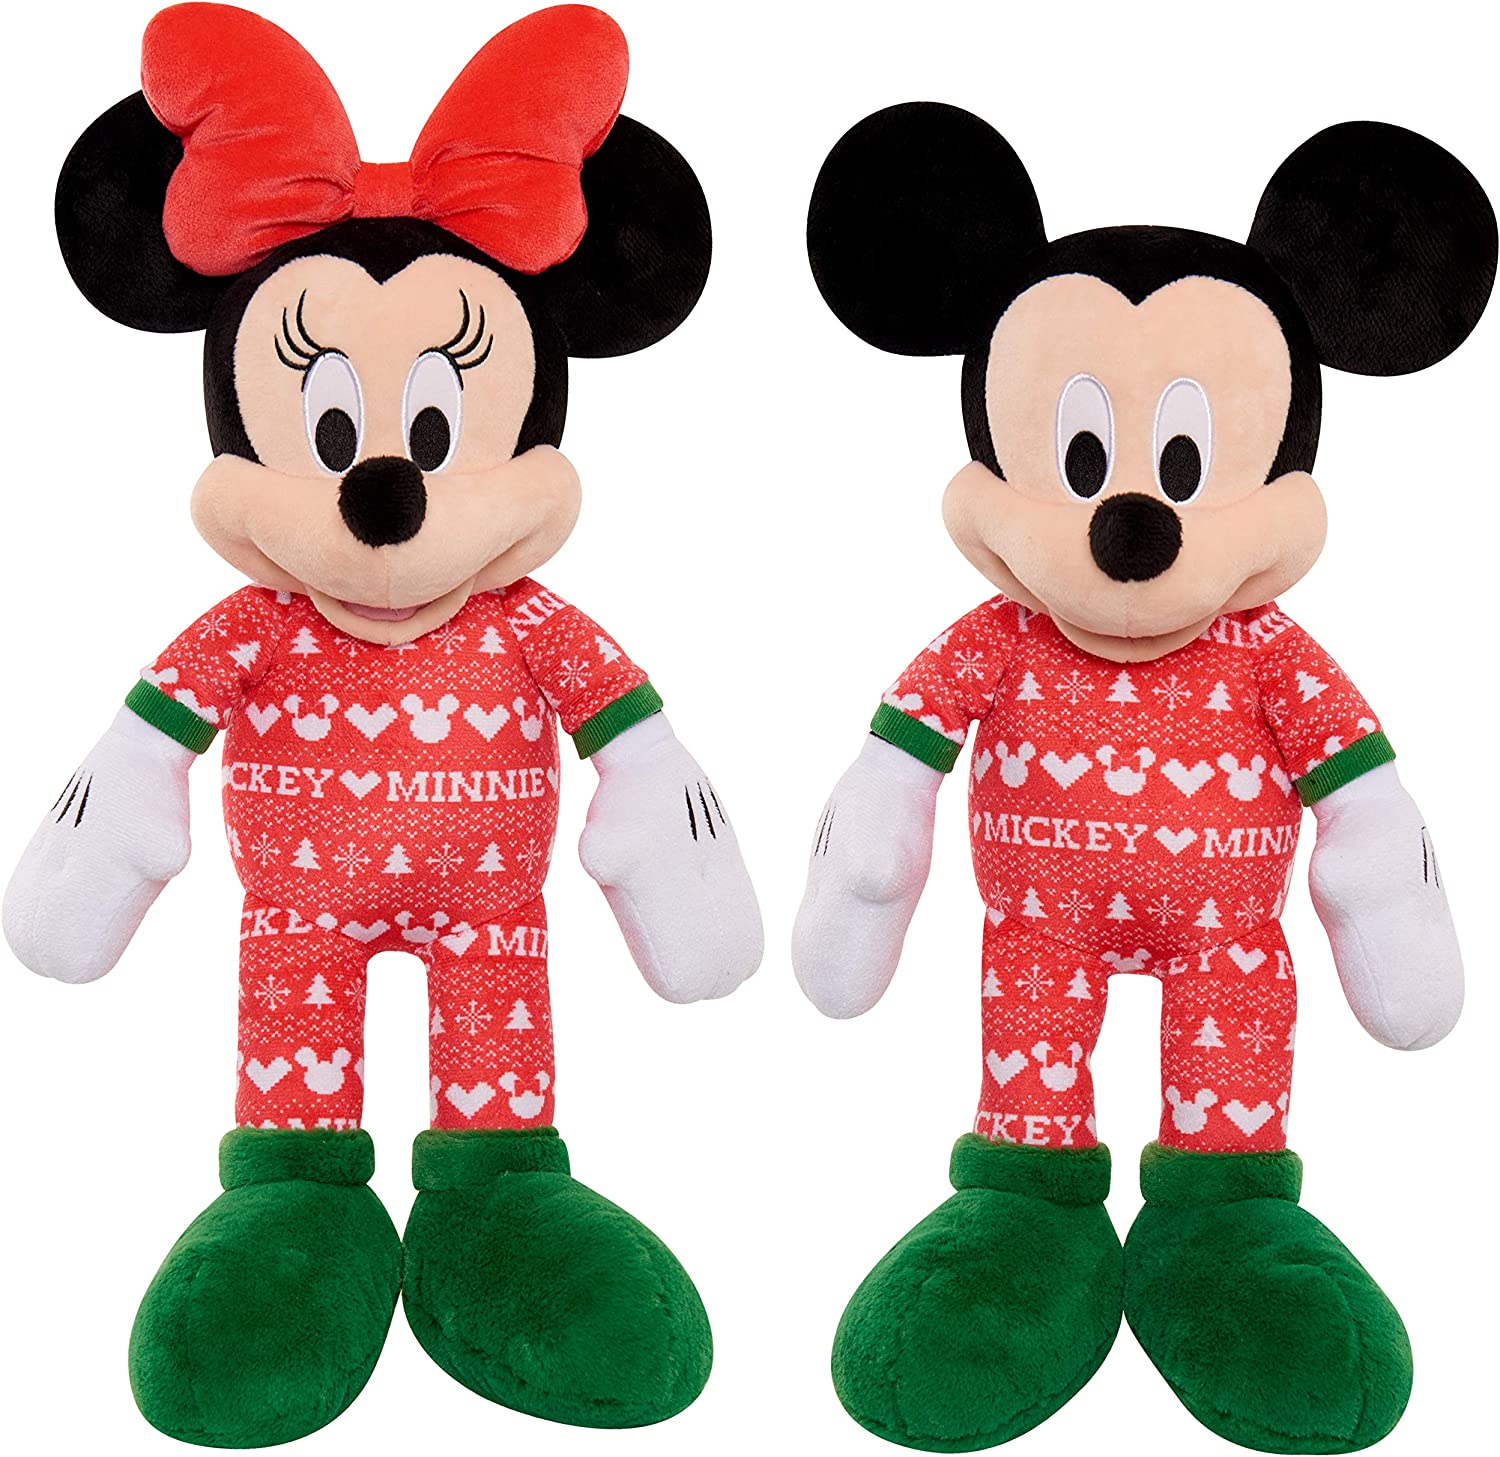 OFFICIAL MICKEY MOUSE 90TH ANNIVERSARY MICKEY AND MINNIE SET PAIR PLUSH SOFT TOY